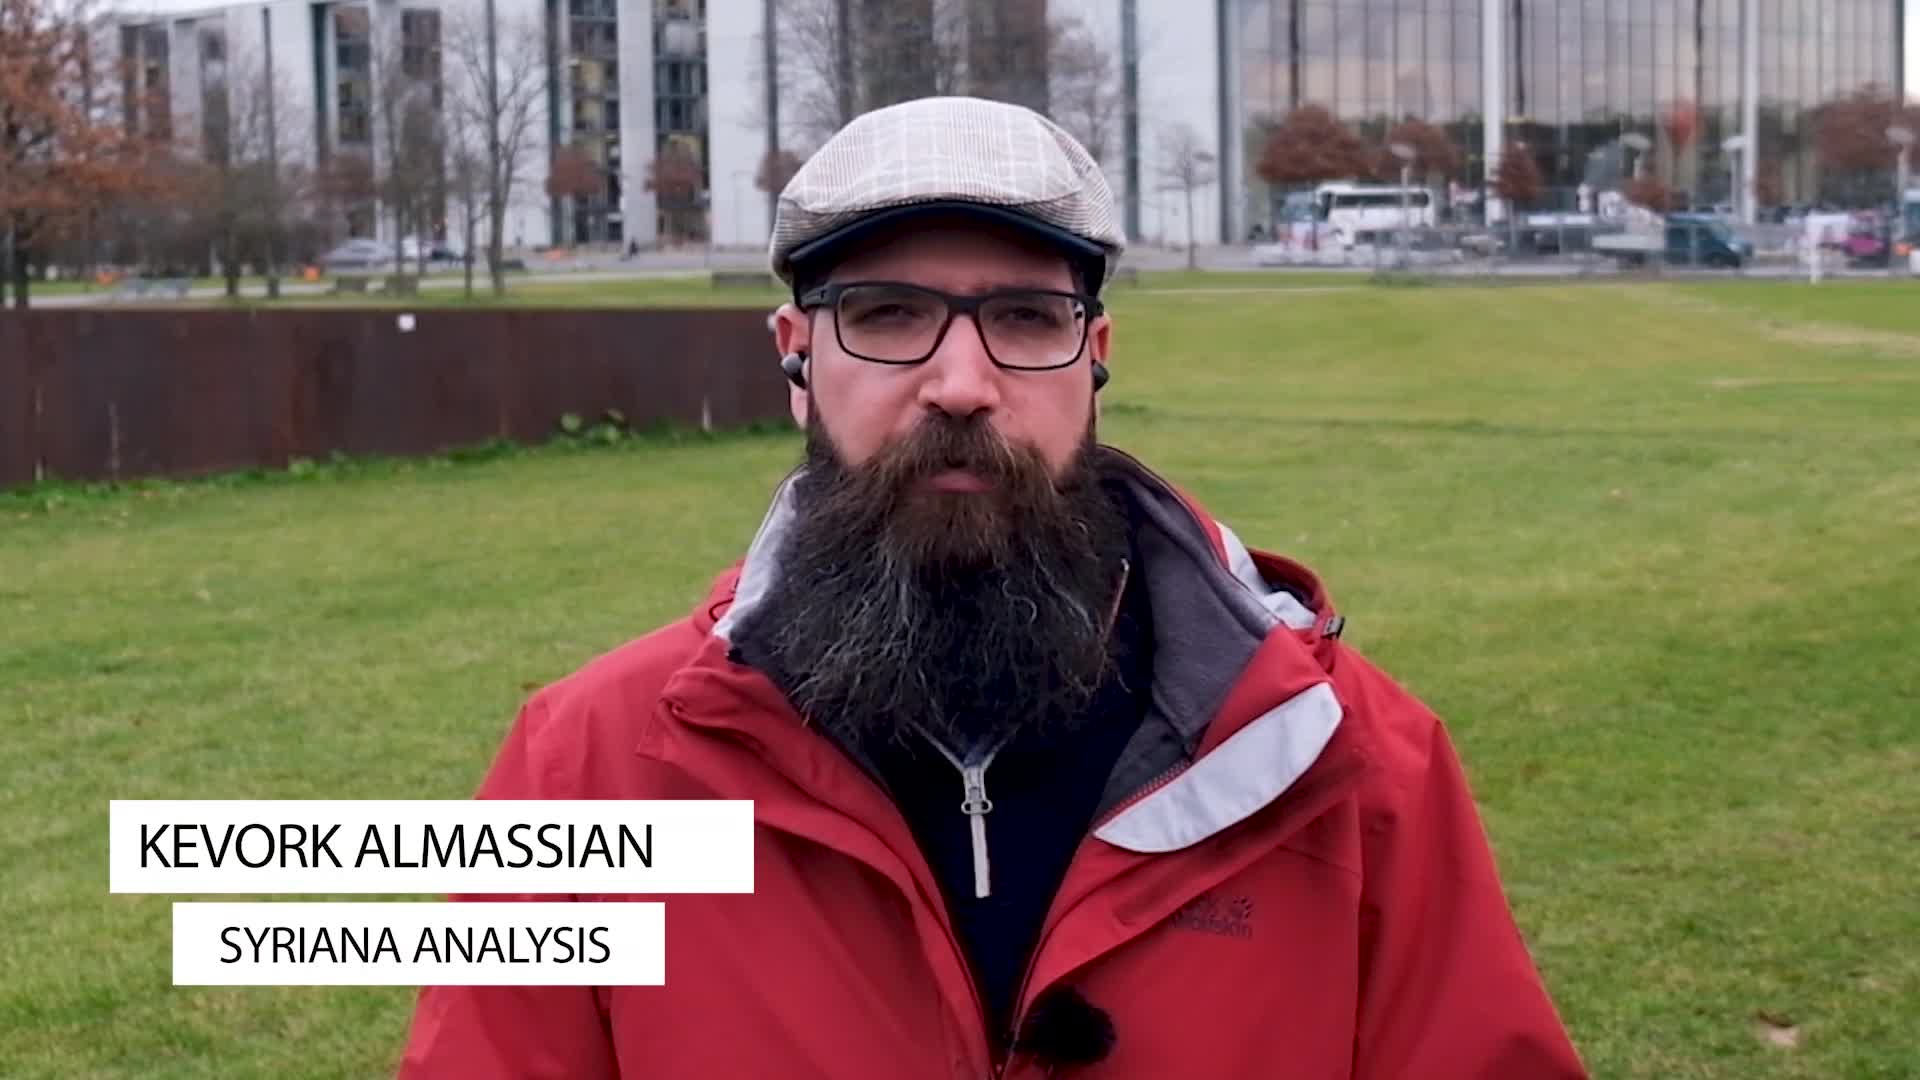 Why Rai News 24 banned Assad's interview